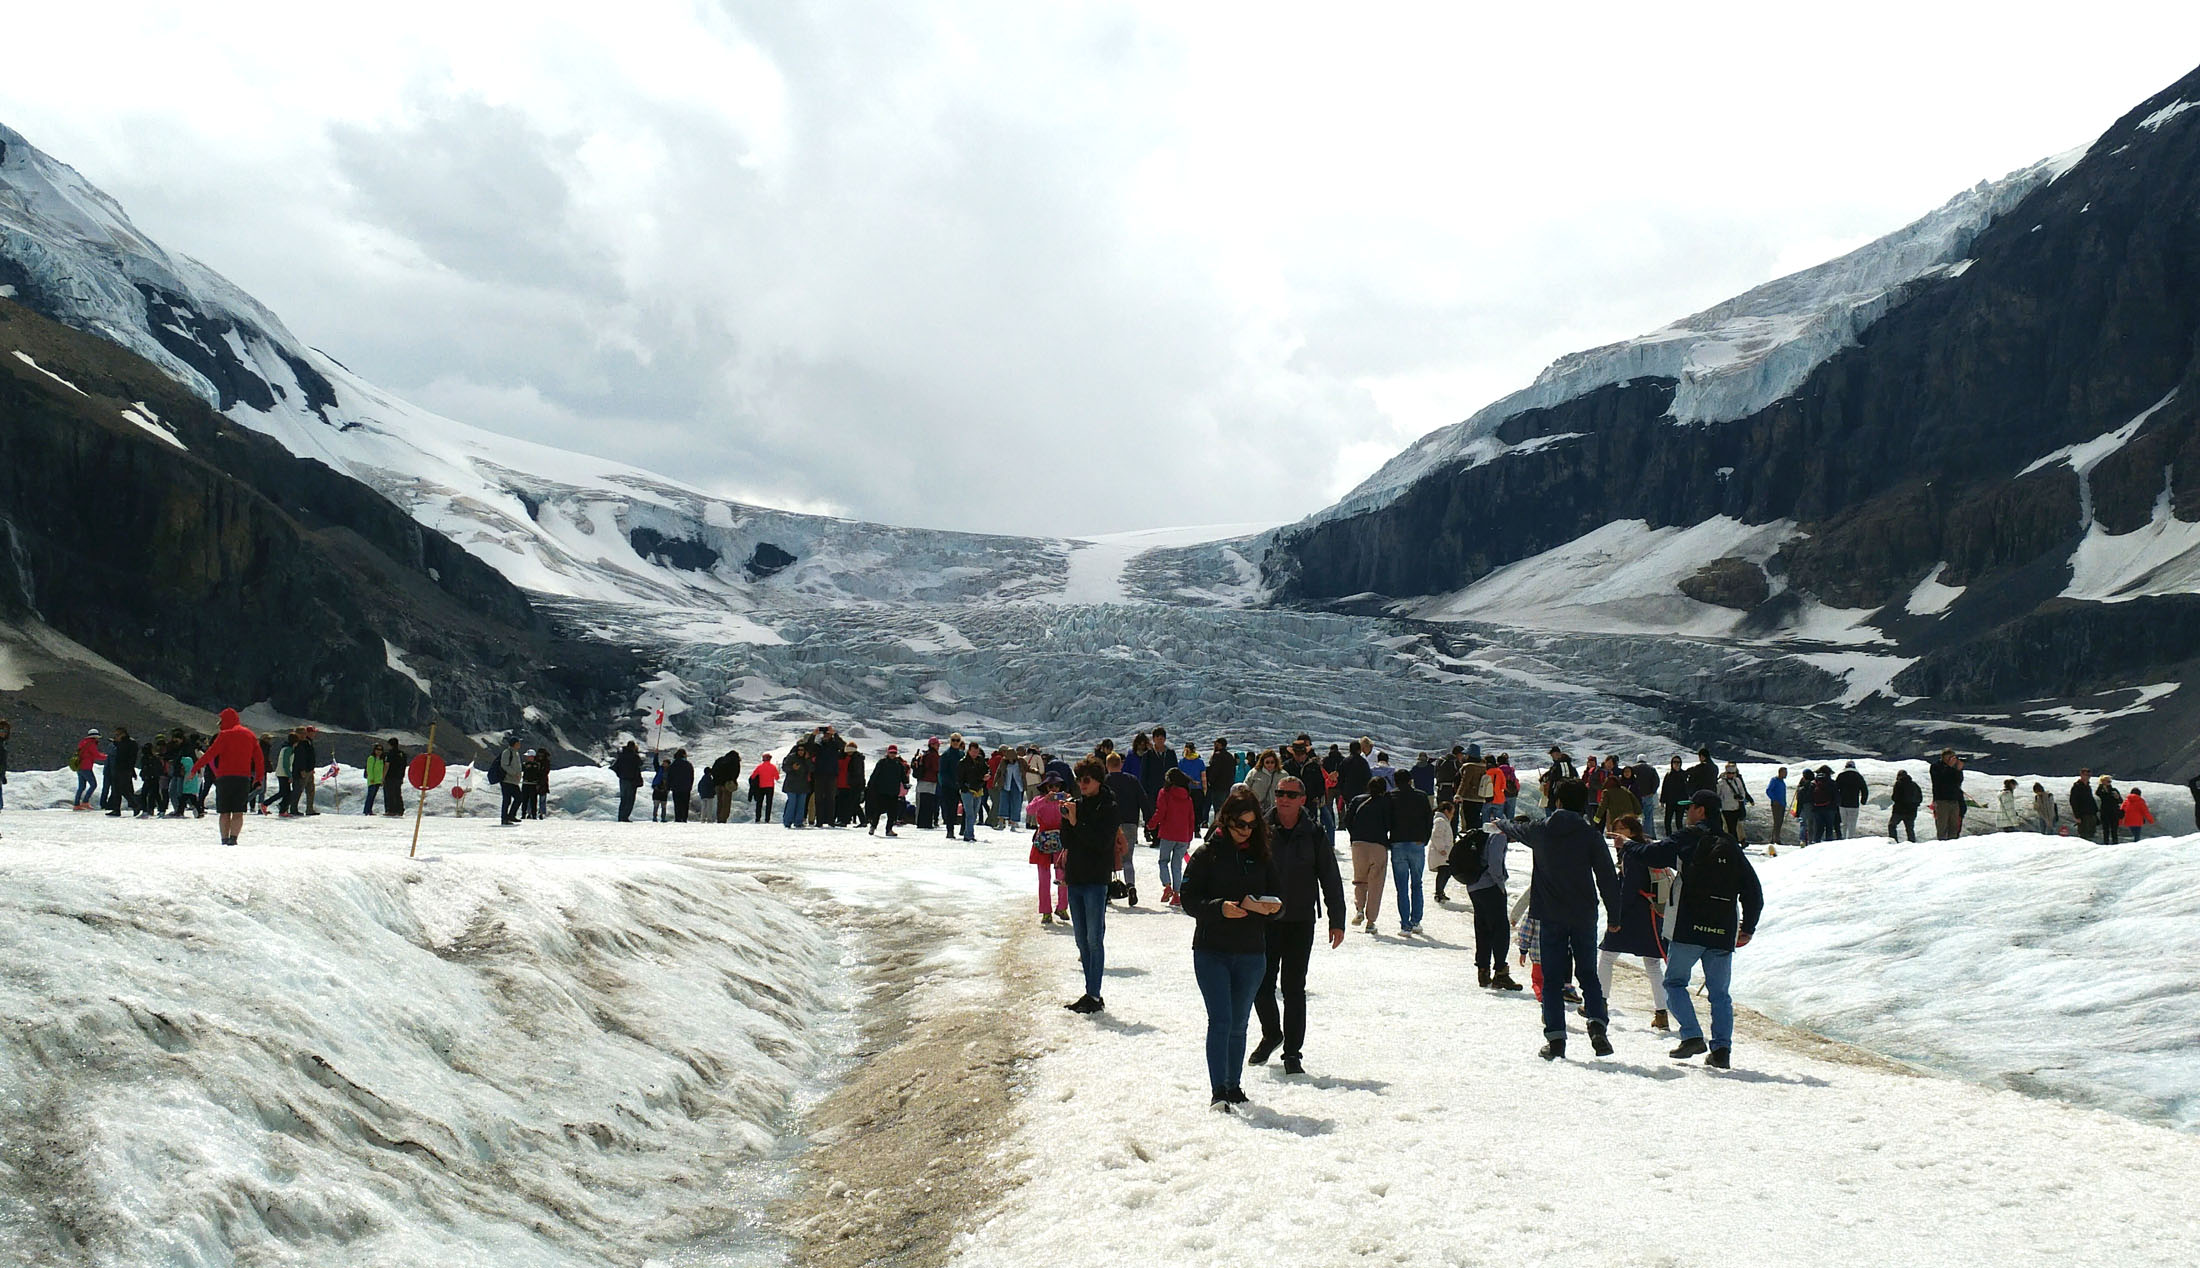 More than 800,000 tourists visit Athabasca Glacier each year. It can get crowded at the main viewing stop. (Craig Davis/craigslegztravels.com)